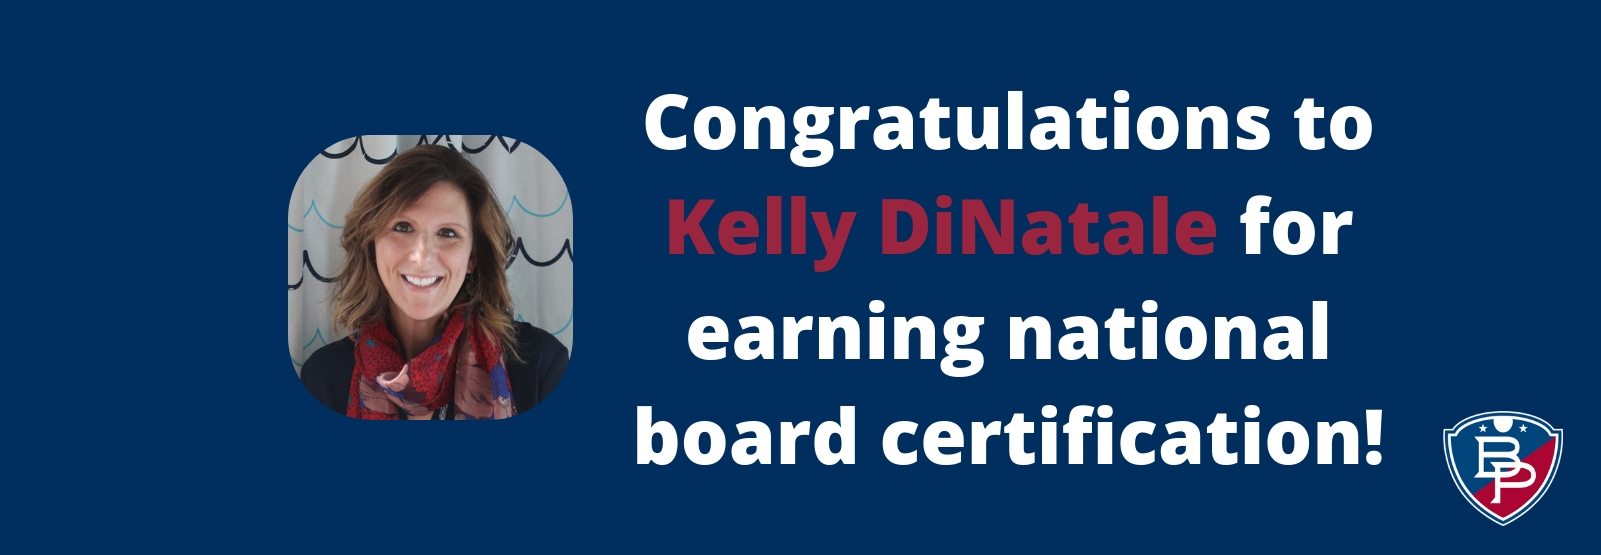 Congratulations to Kelly DiNatale for earning national board certification, with portrait of middle school science teacher and B-P logo